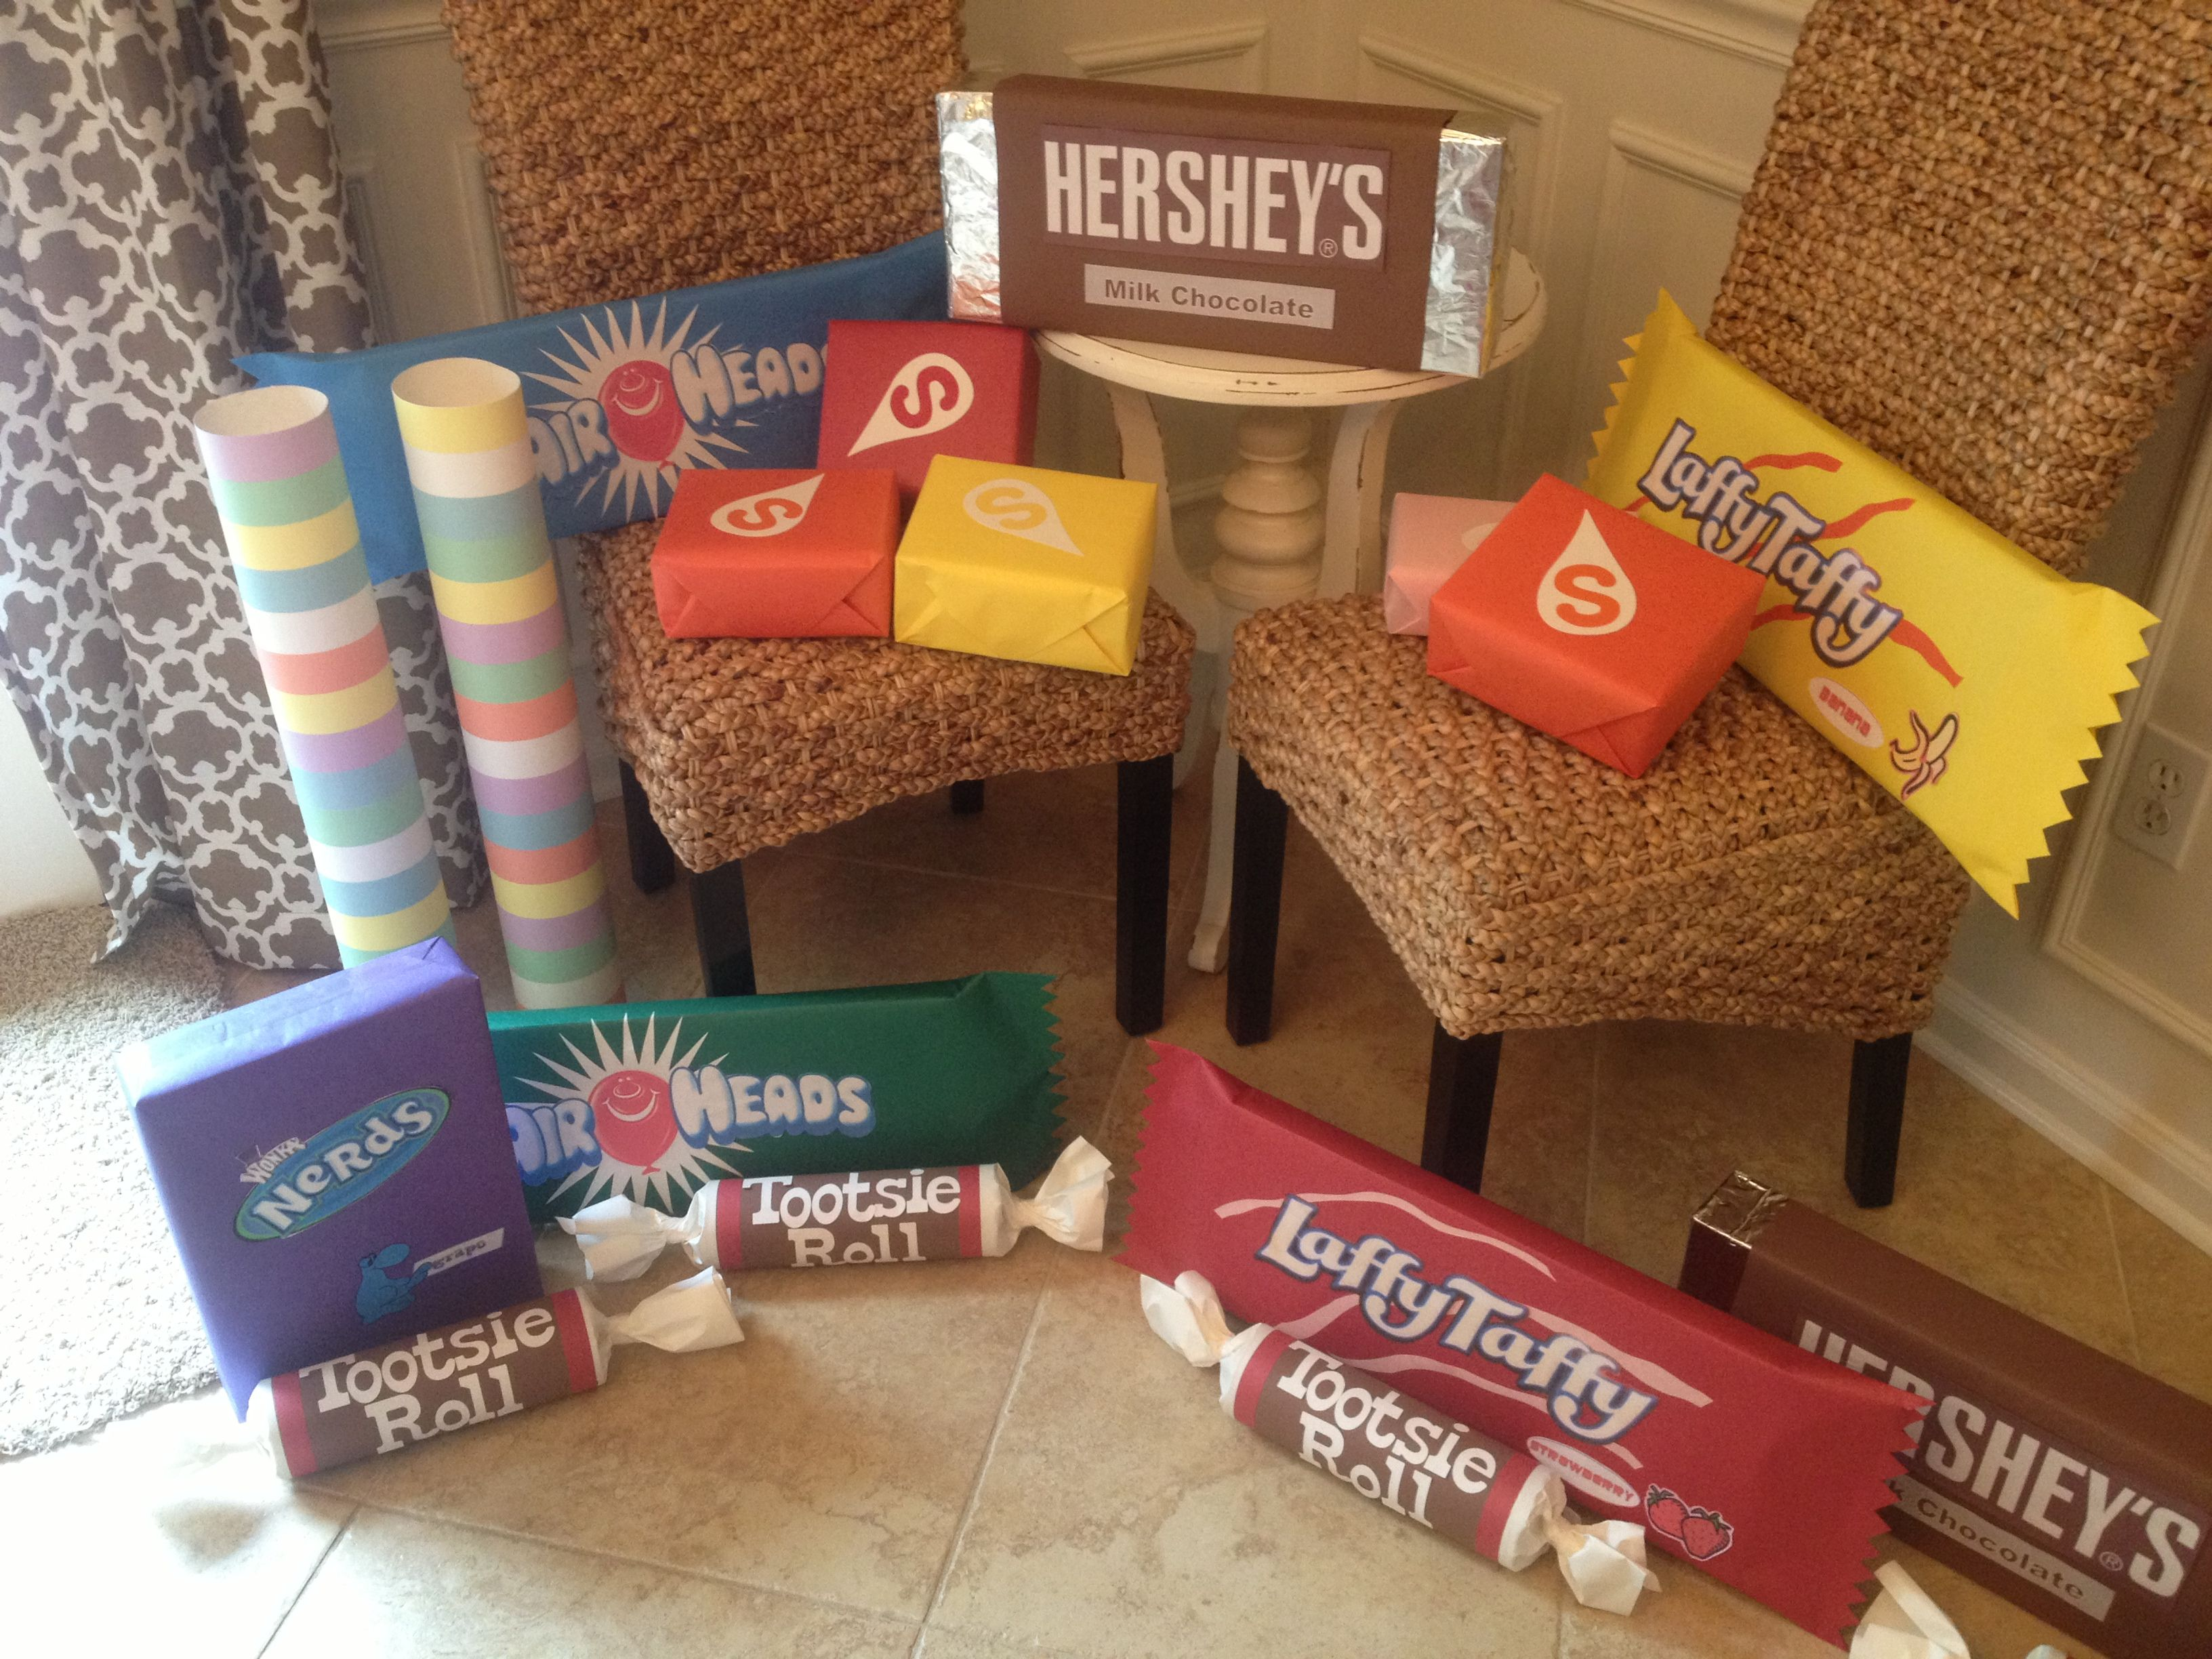 Candy props-any box or cardboard tube can be paper wrapped or painted to resemble candy #candylanddecorations